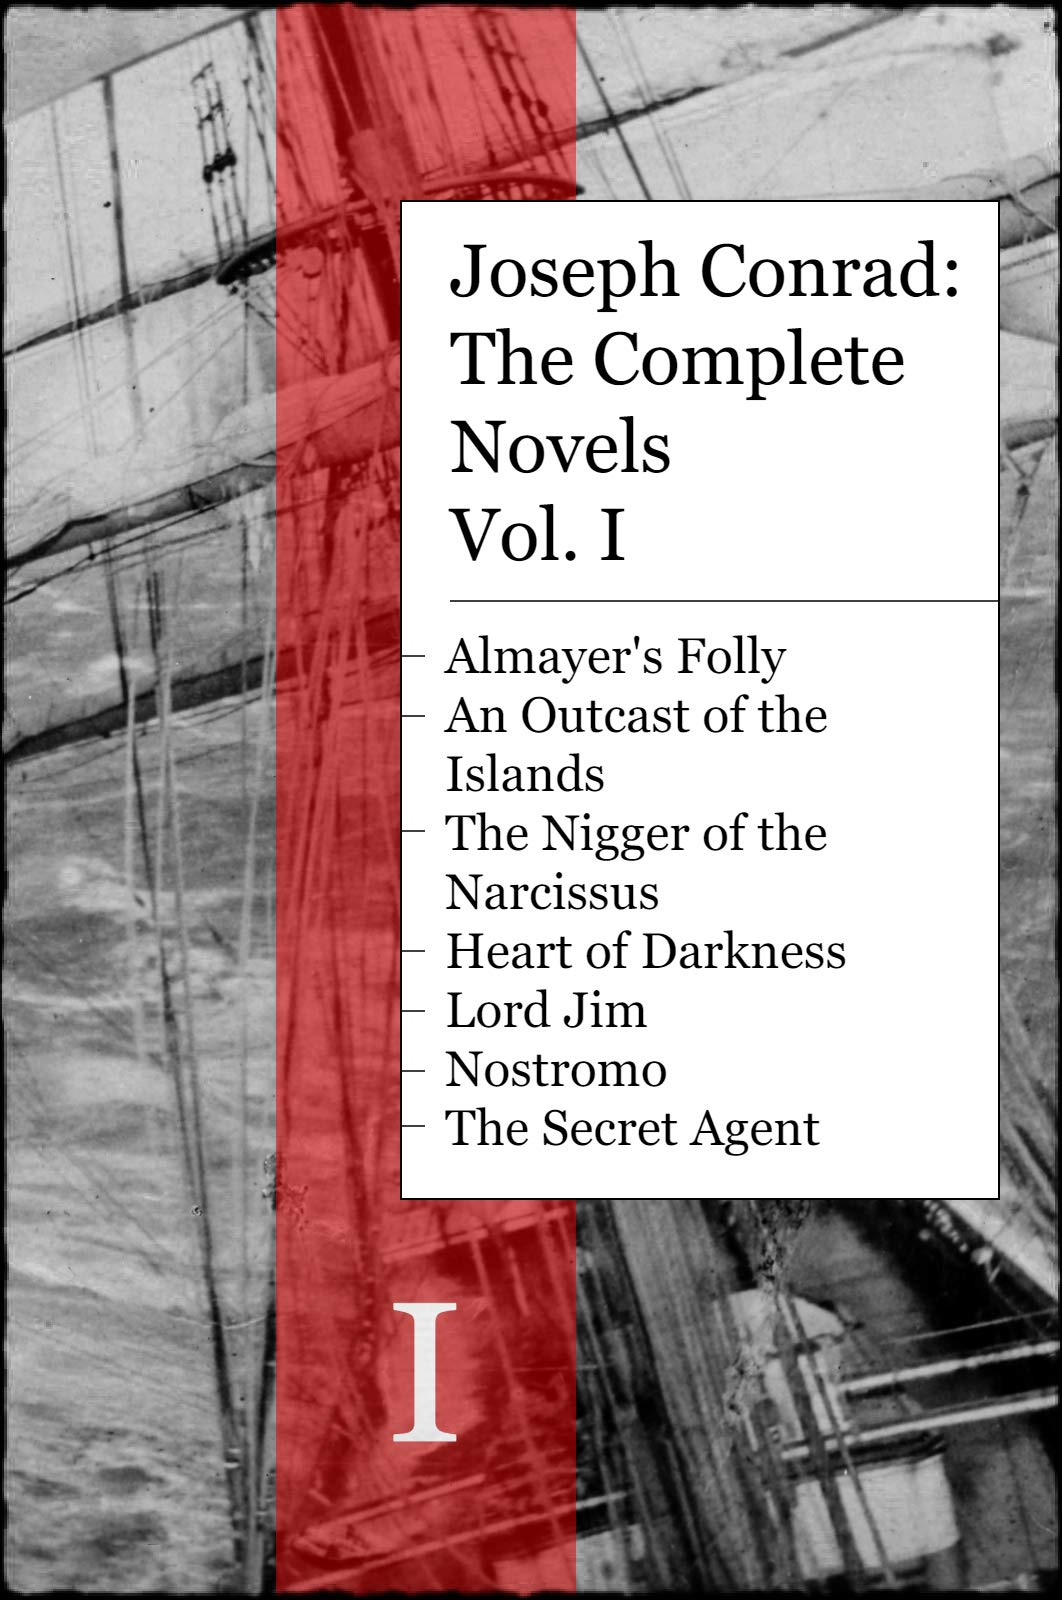 Joseph Conrad: The Complete Novels Vol. I: Almayer's Folly, An Outcast of the Islands, The Nigger Of The Narcissus, Heart of Darkness, Lord Jim, Nostromo, and The Secret Agent